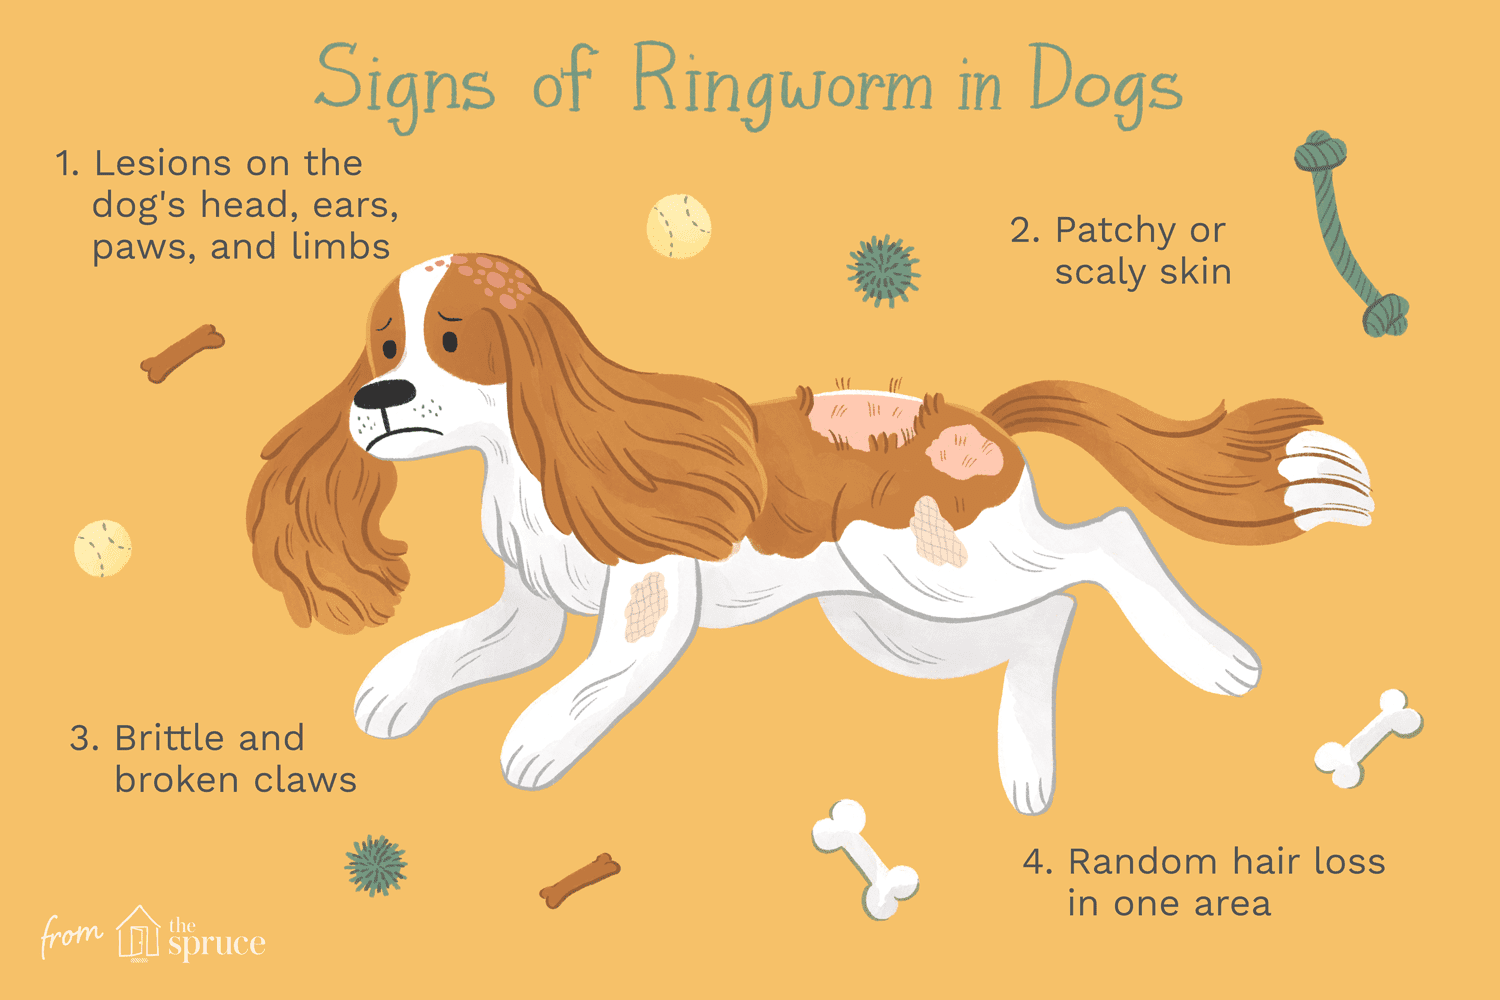 How to Treat Ringworm in Dogs